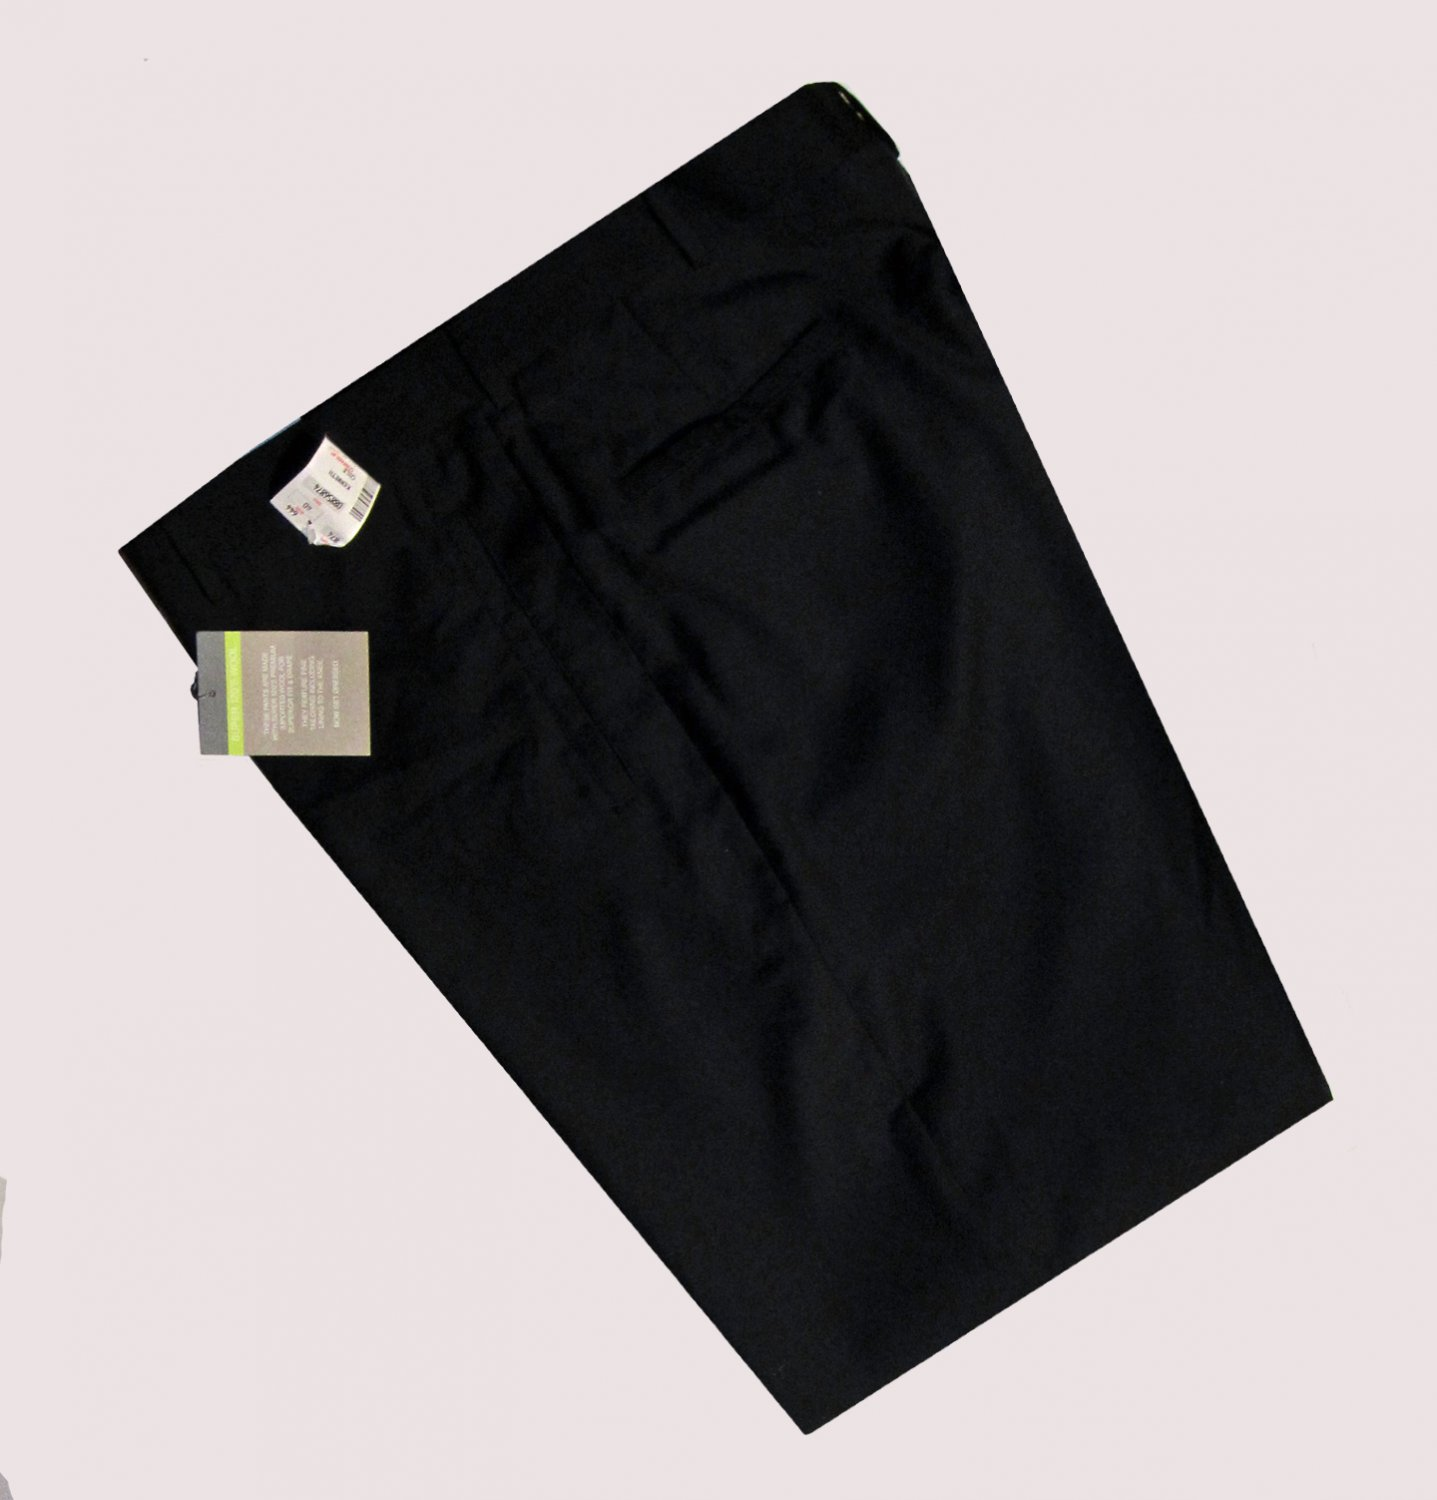 Kenneth Cole Reaction $135 Navy Blue Super 120's Wool Pants 40 32 kc0885